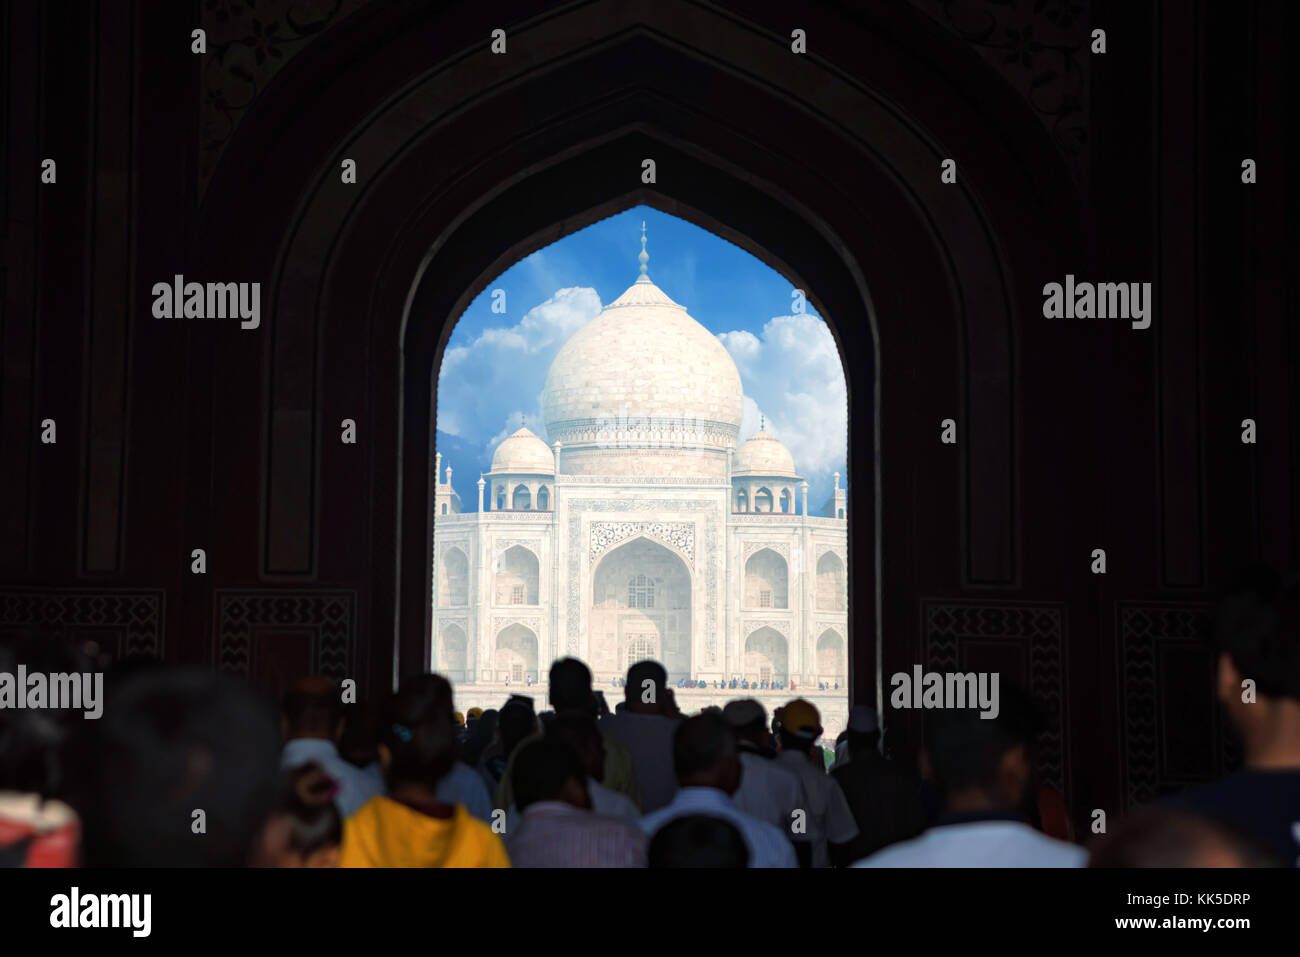 Taj Mahal scenic gate view in Agra, India. - Stock Image